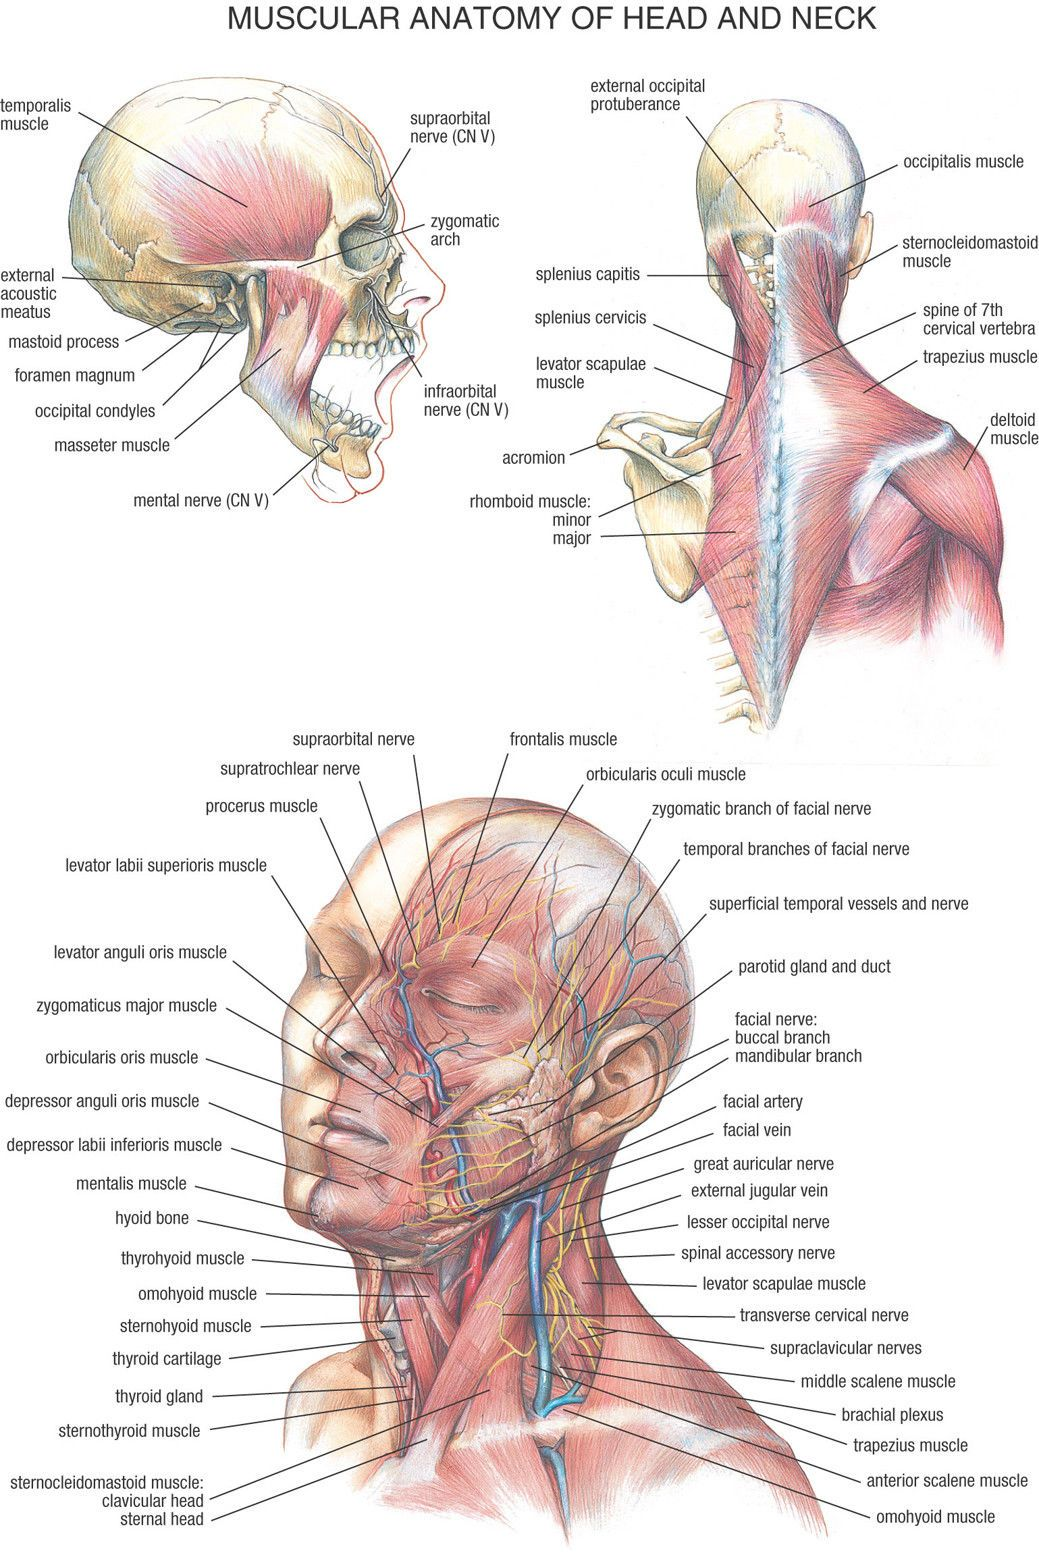 small resolution of  4 99 human muscular anatomy of head and neck poster chart body midcal education ebay collectibles